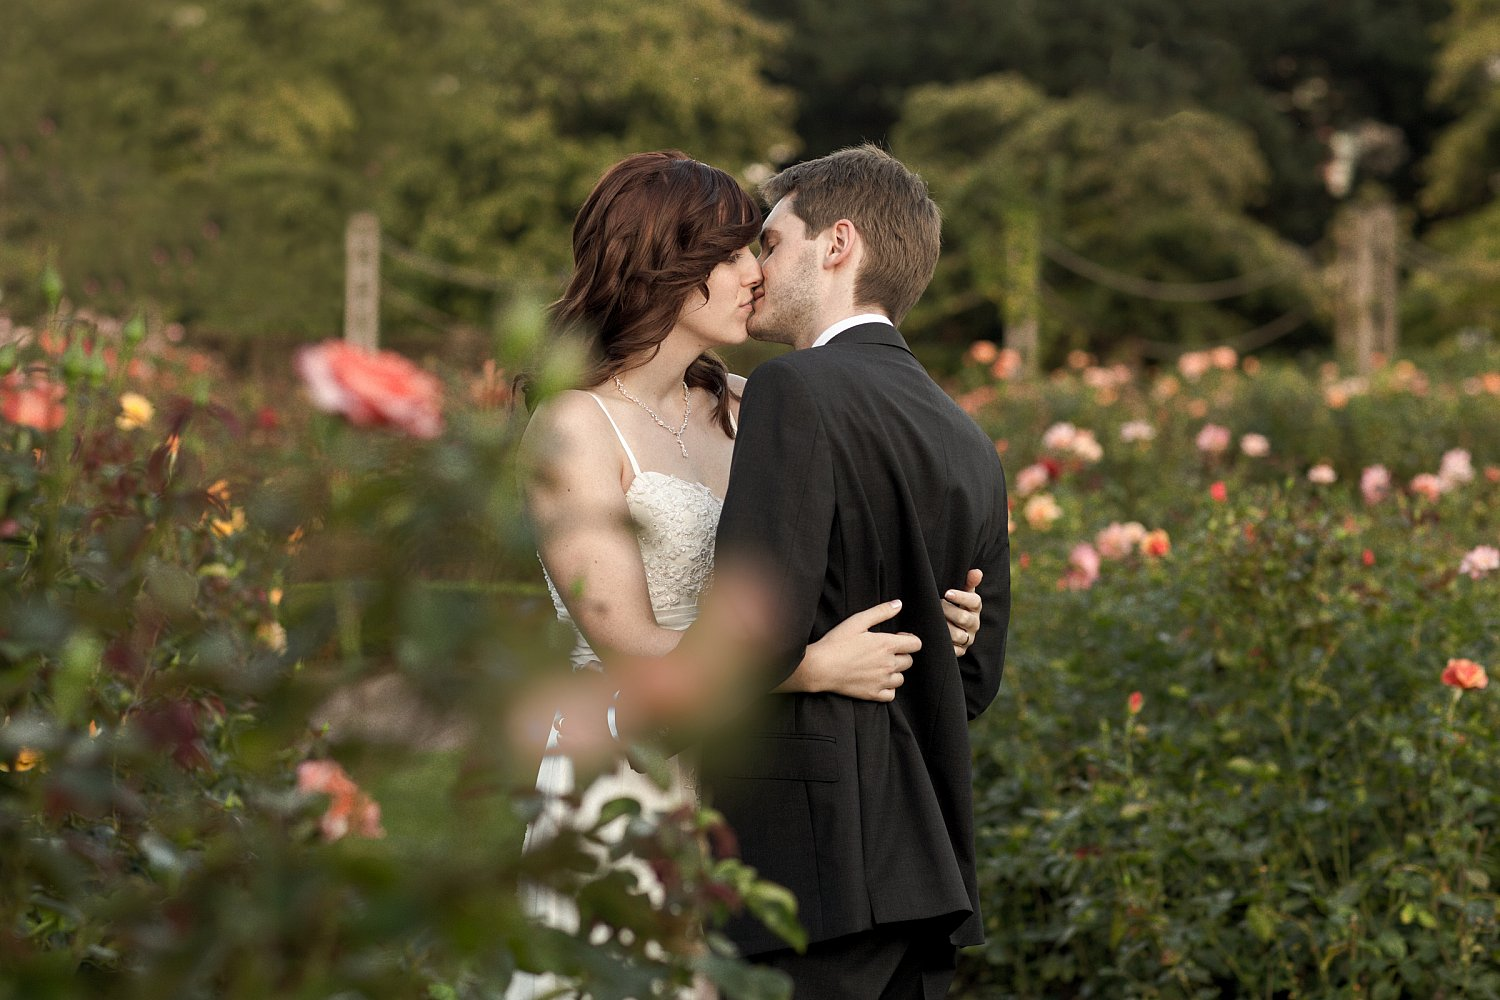 lovers-embrace-rose-garden-regents-park-london-mat-smith-photography_.jpg